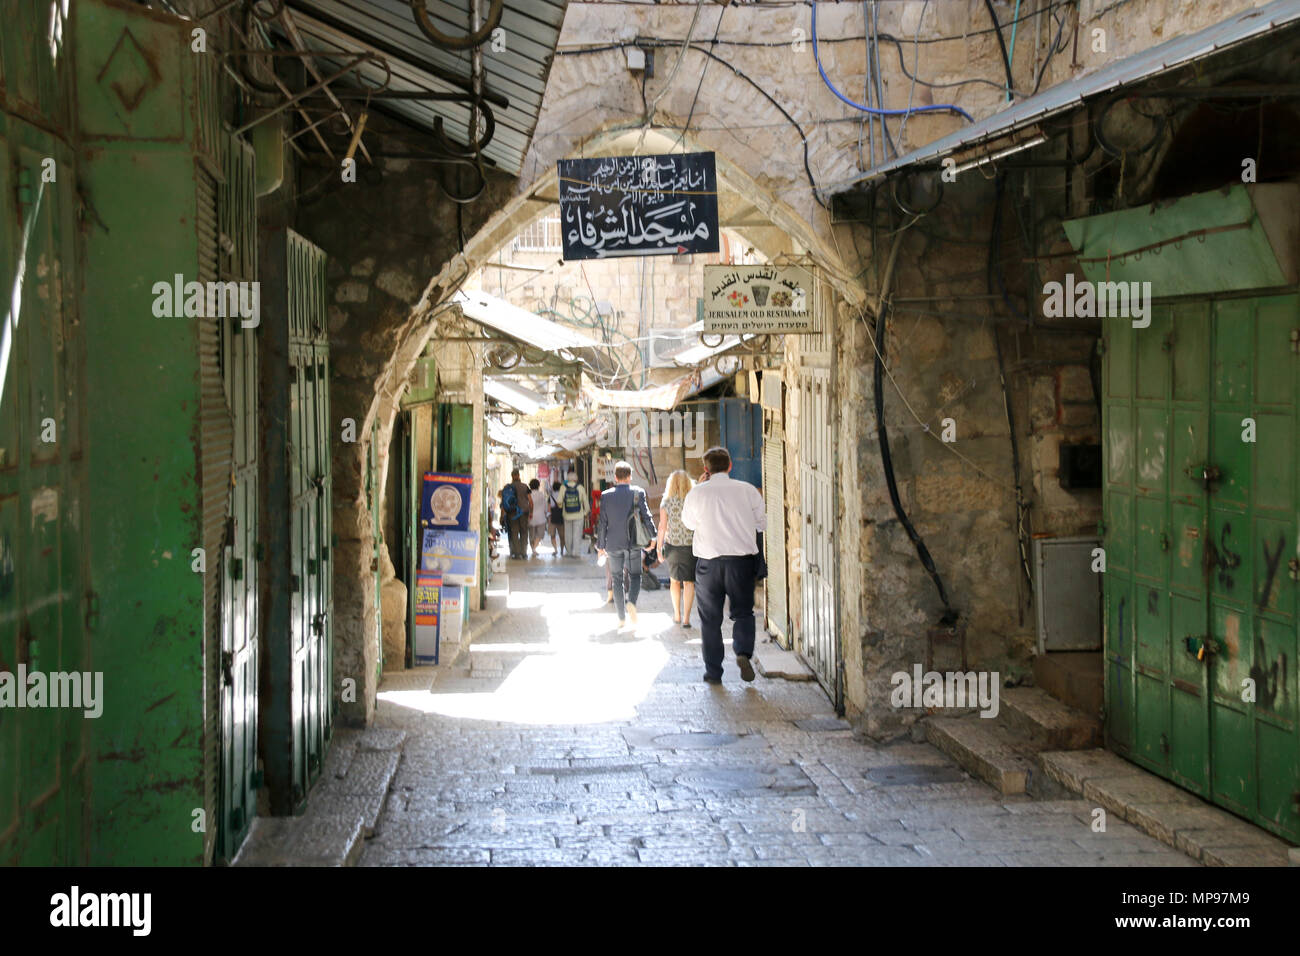 Jerusalem, Israel - May 16, 2018: View into an alley of the bazaar in the Old City of Jerusalem, Israel. - Stock Image